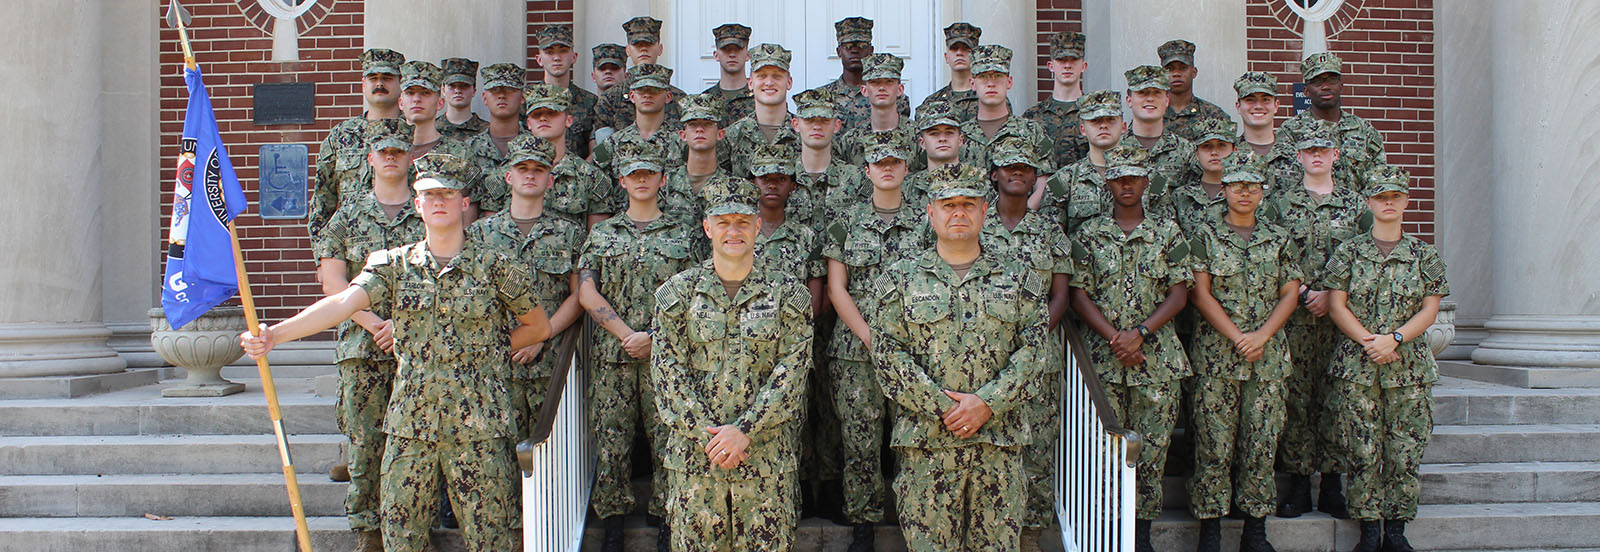 Prospective UM NROTC candidates are highly encouraged to complete an officer interview with local unit.